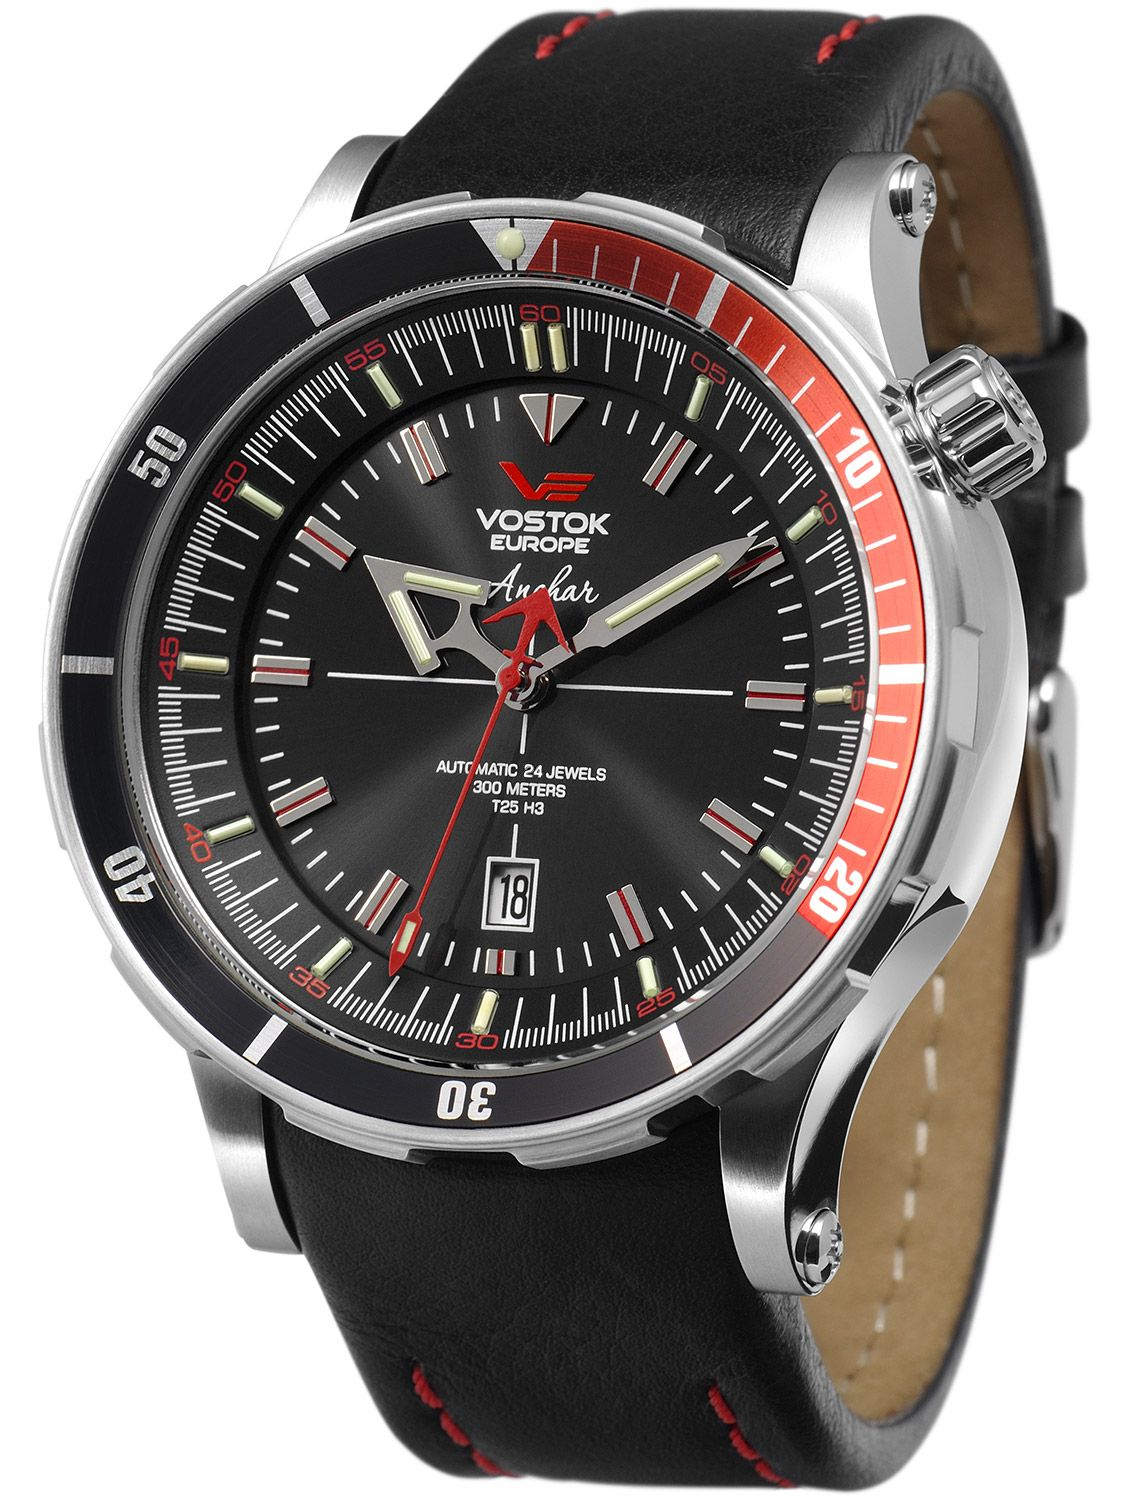 Vostok europe 5105141 anchar automatic diver watch set for Vostok europe watches